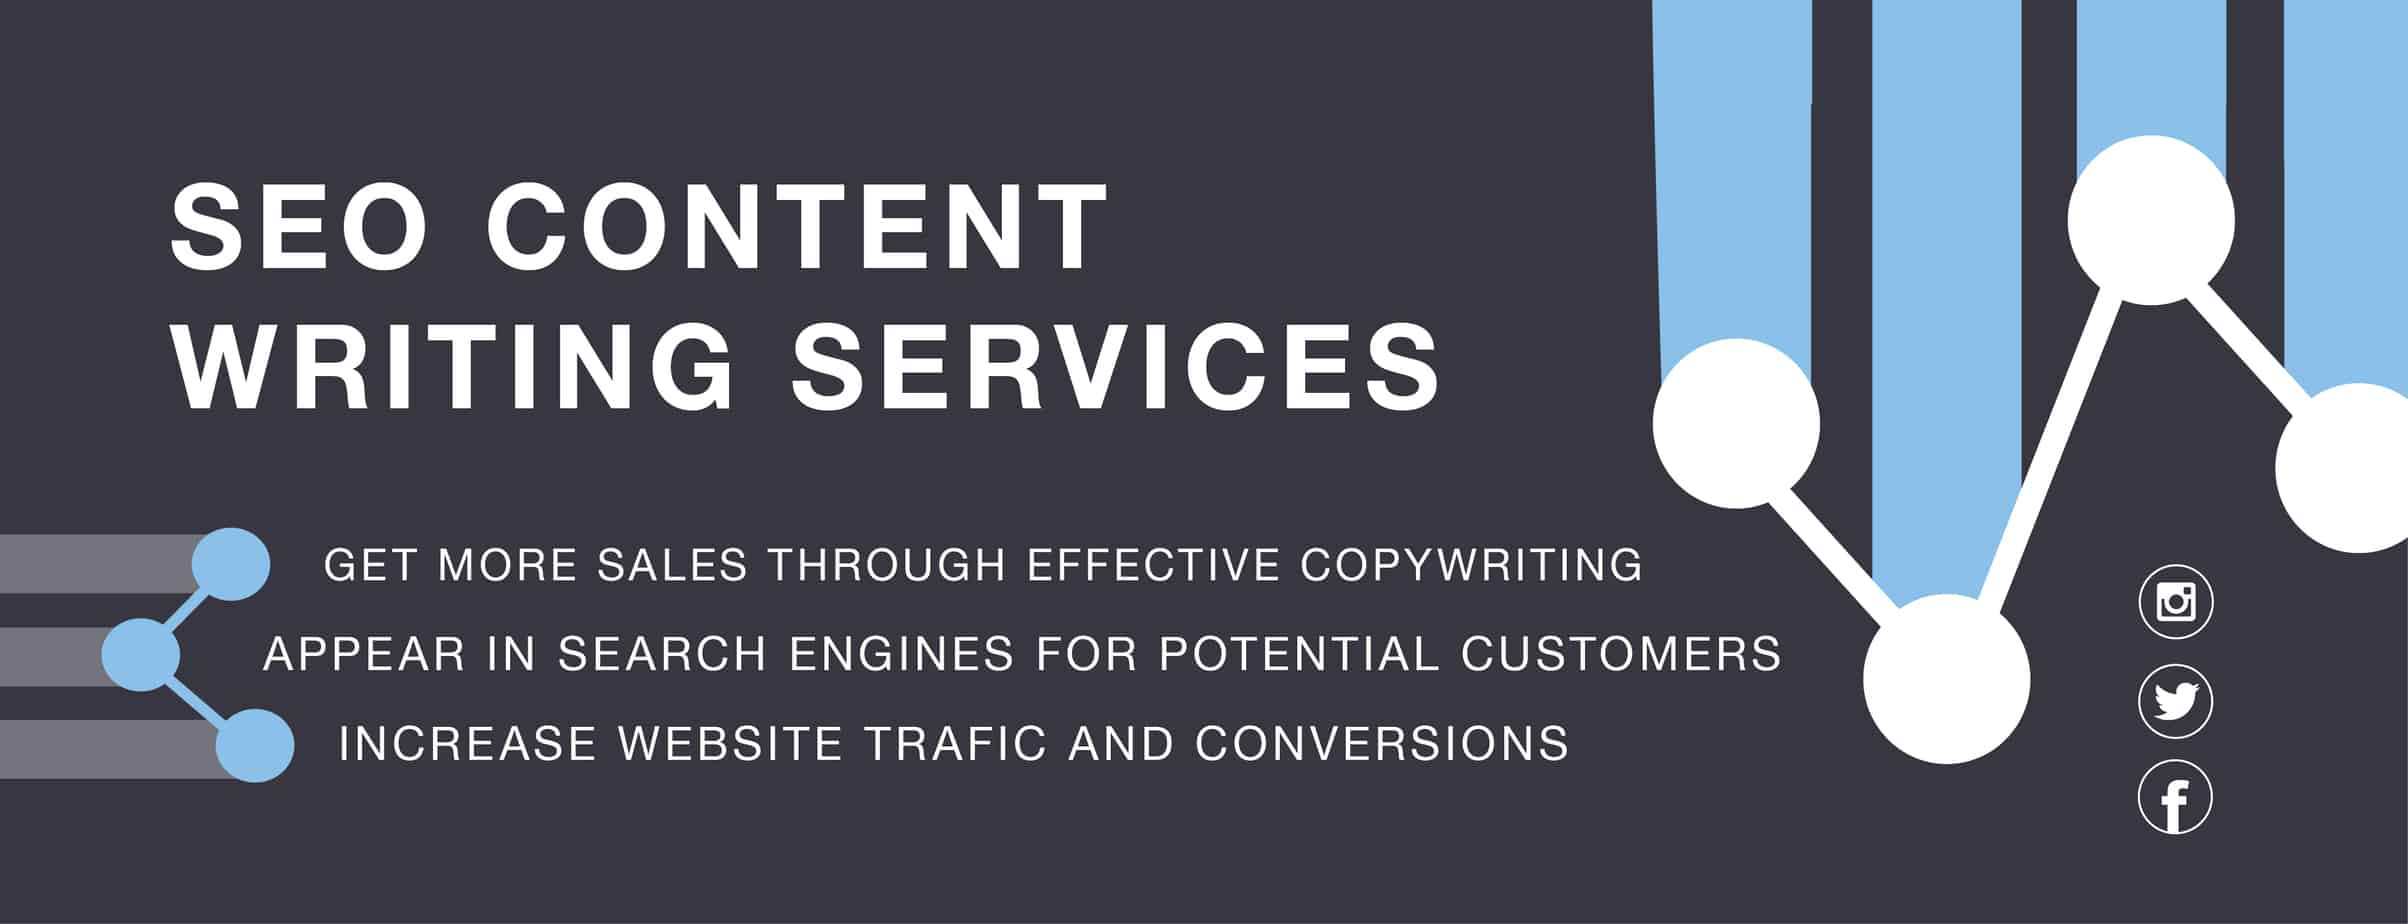 SEO Content Writing Services | Brafton